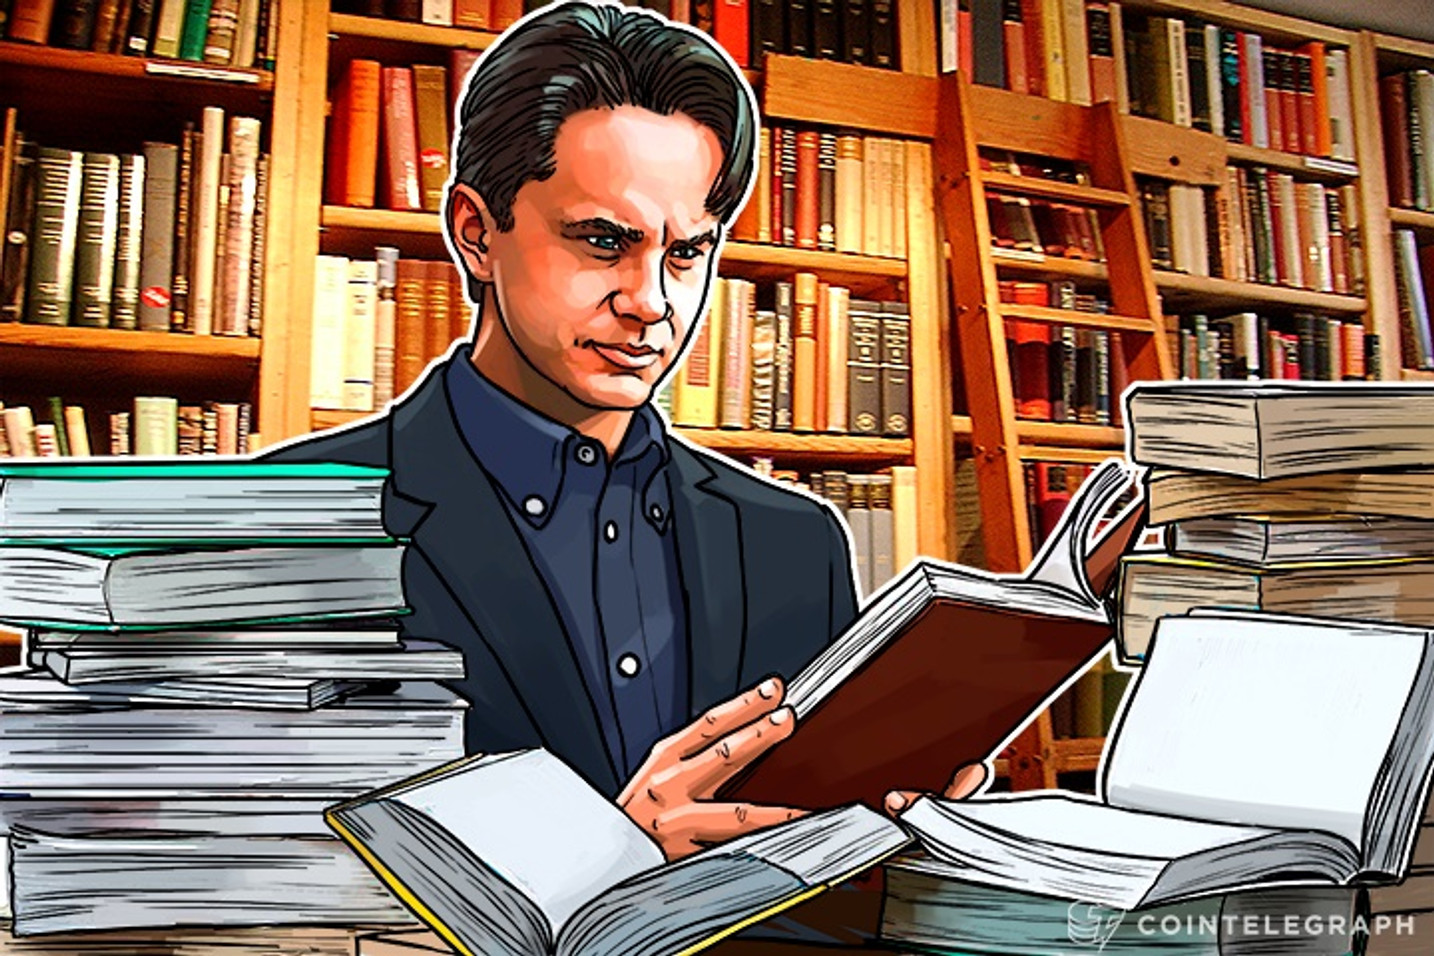 Shrem, Faiella, Powell To Become Members of Bitcoin Prisoners Book Club